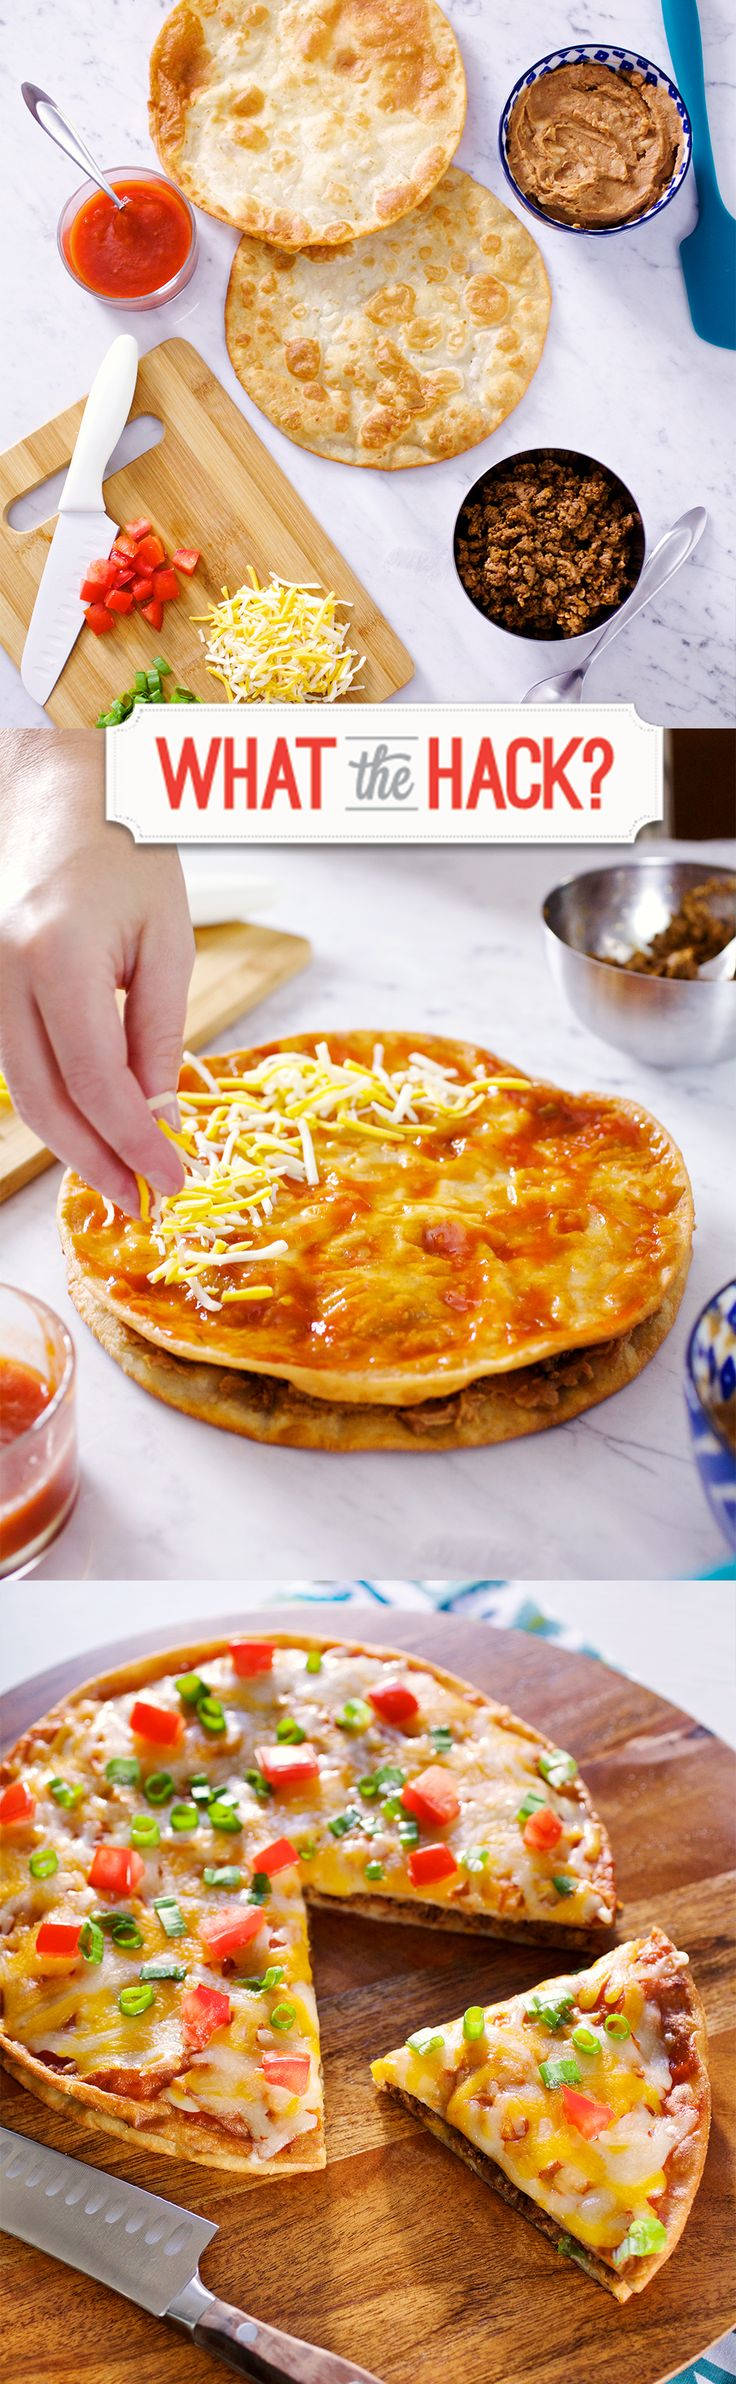 Make this #GlutenFree Mexican Pizza using Udi's tortillas!